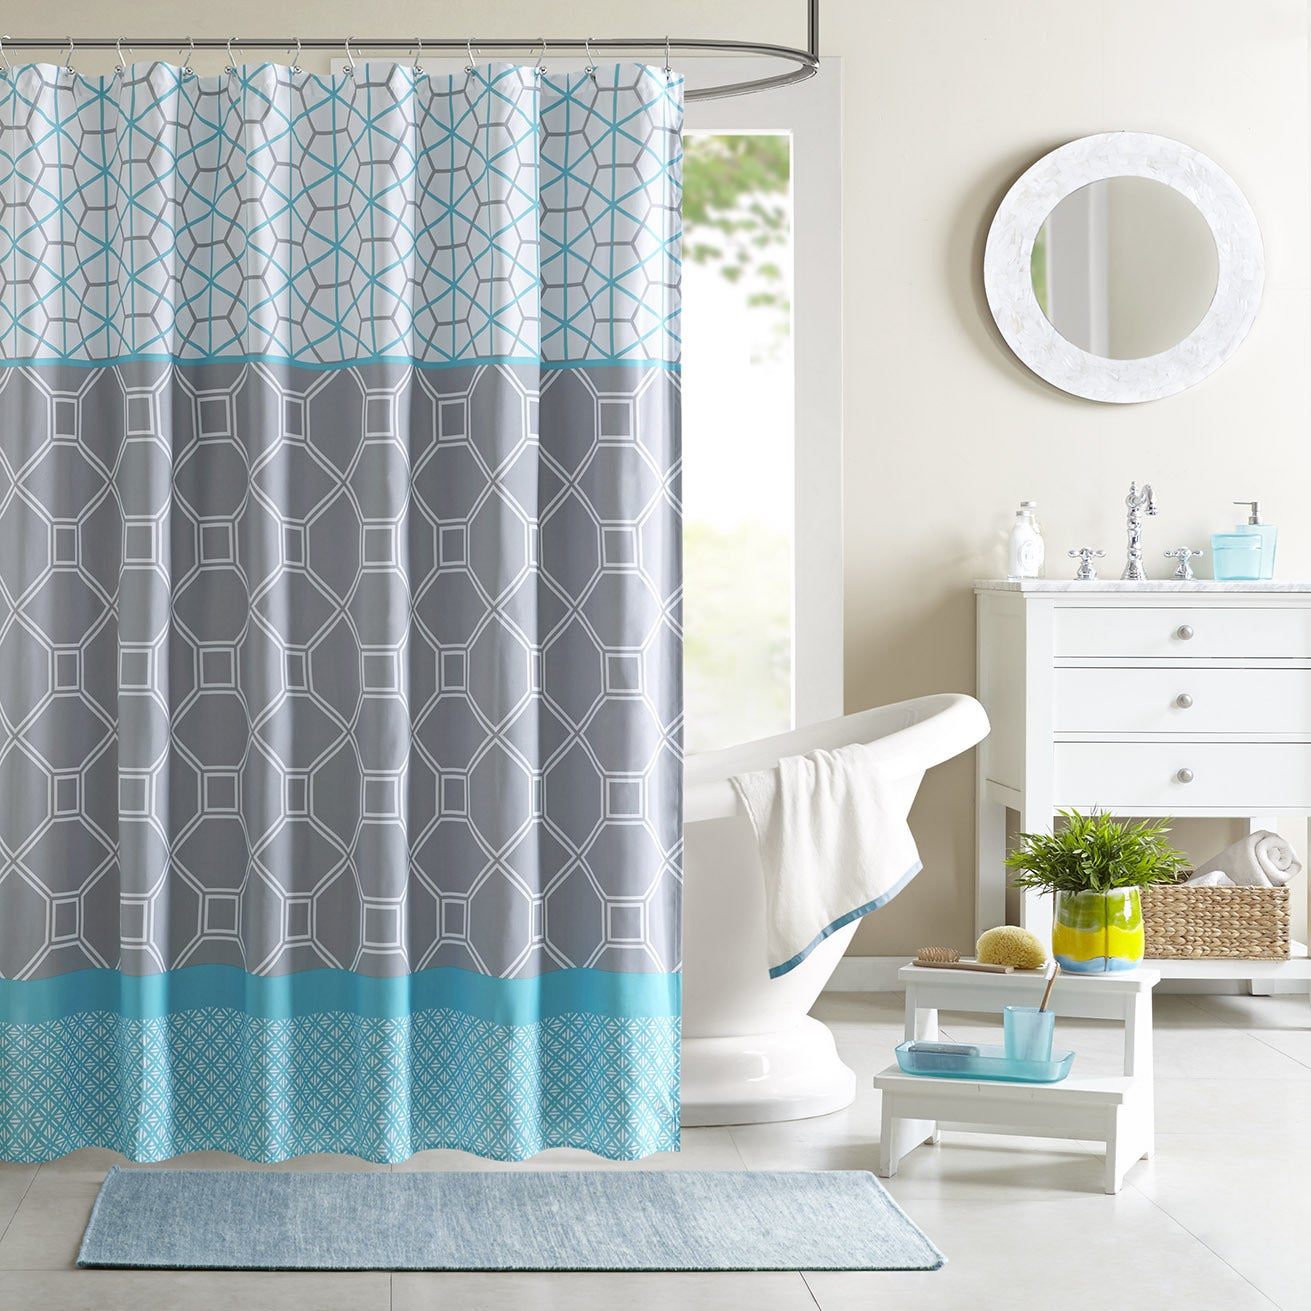 Intelligent design zara shower curtain overstock - Intelligent shower ...